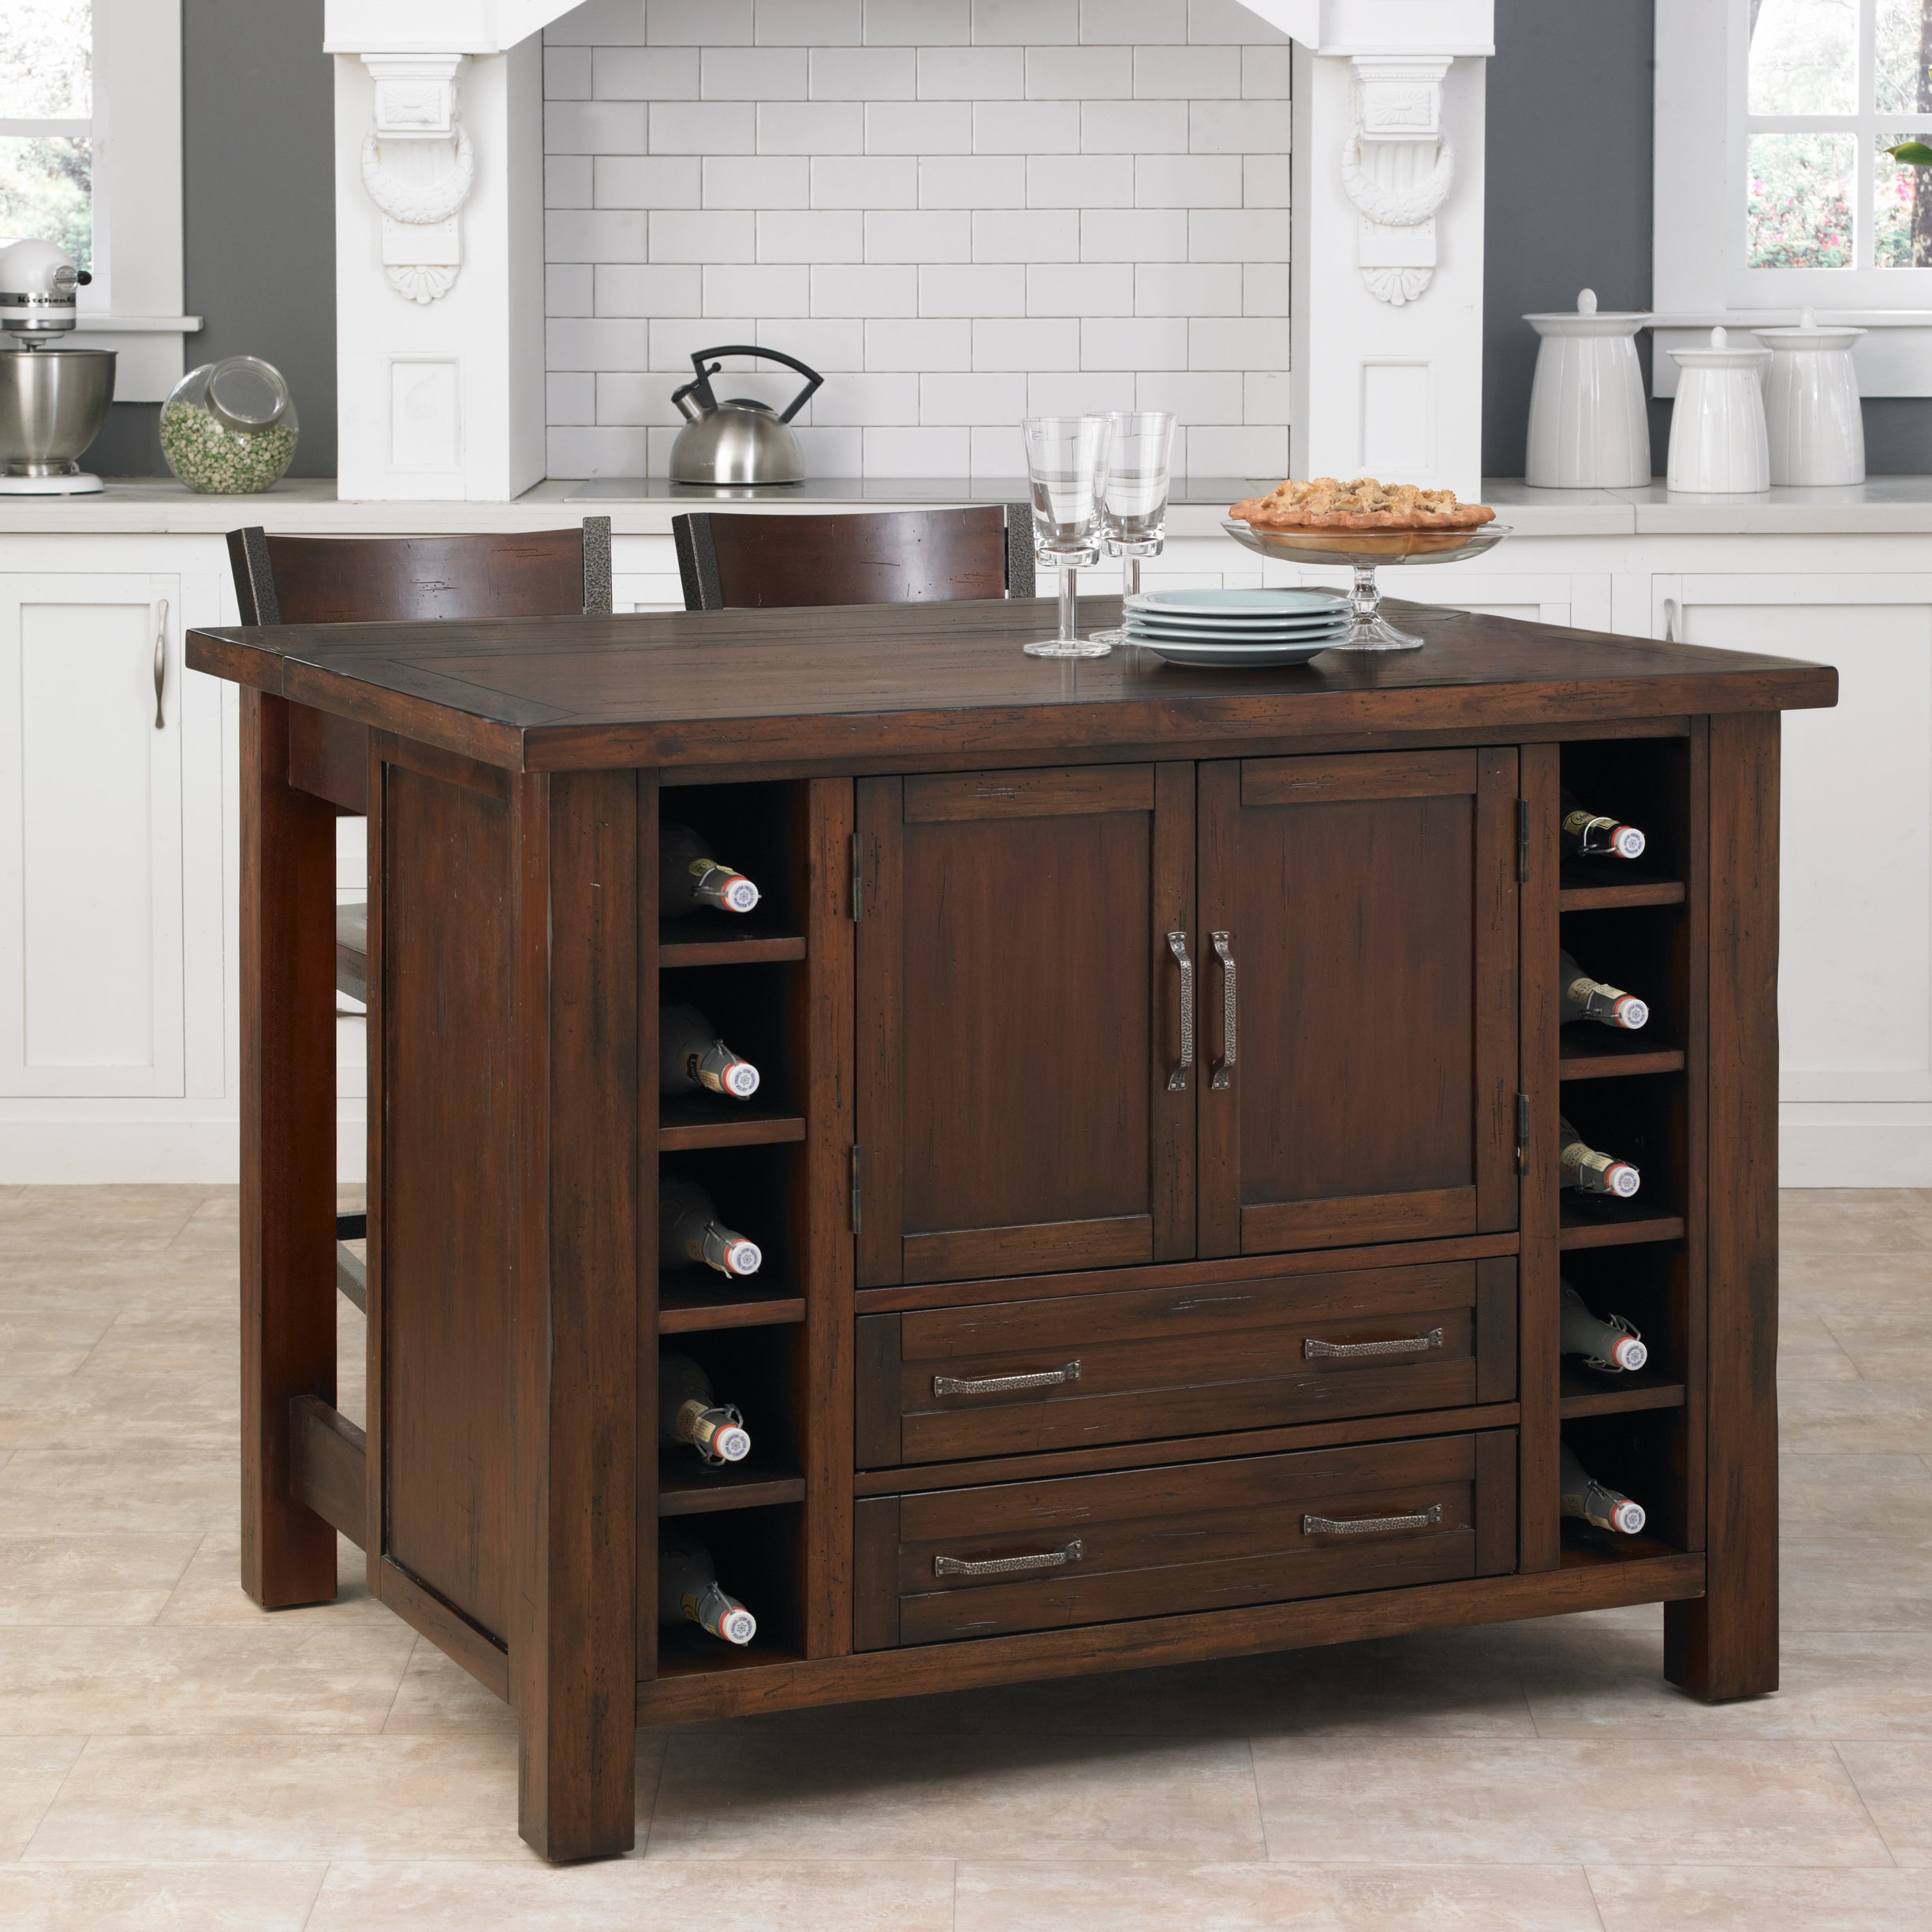 cabin creek kitchen island breakfast bar with two stools